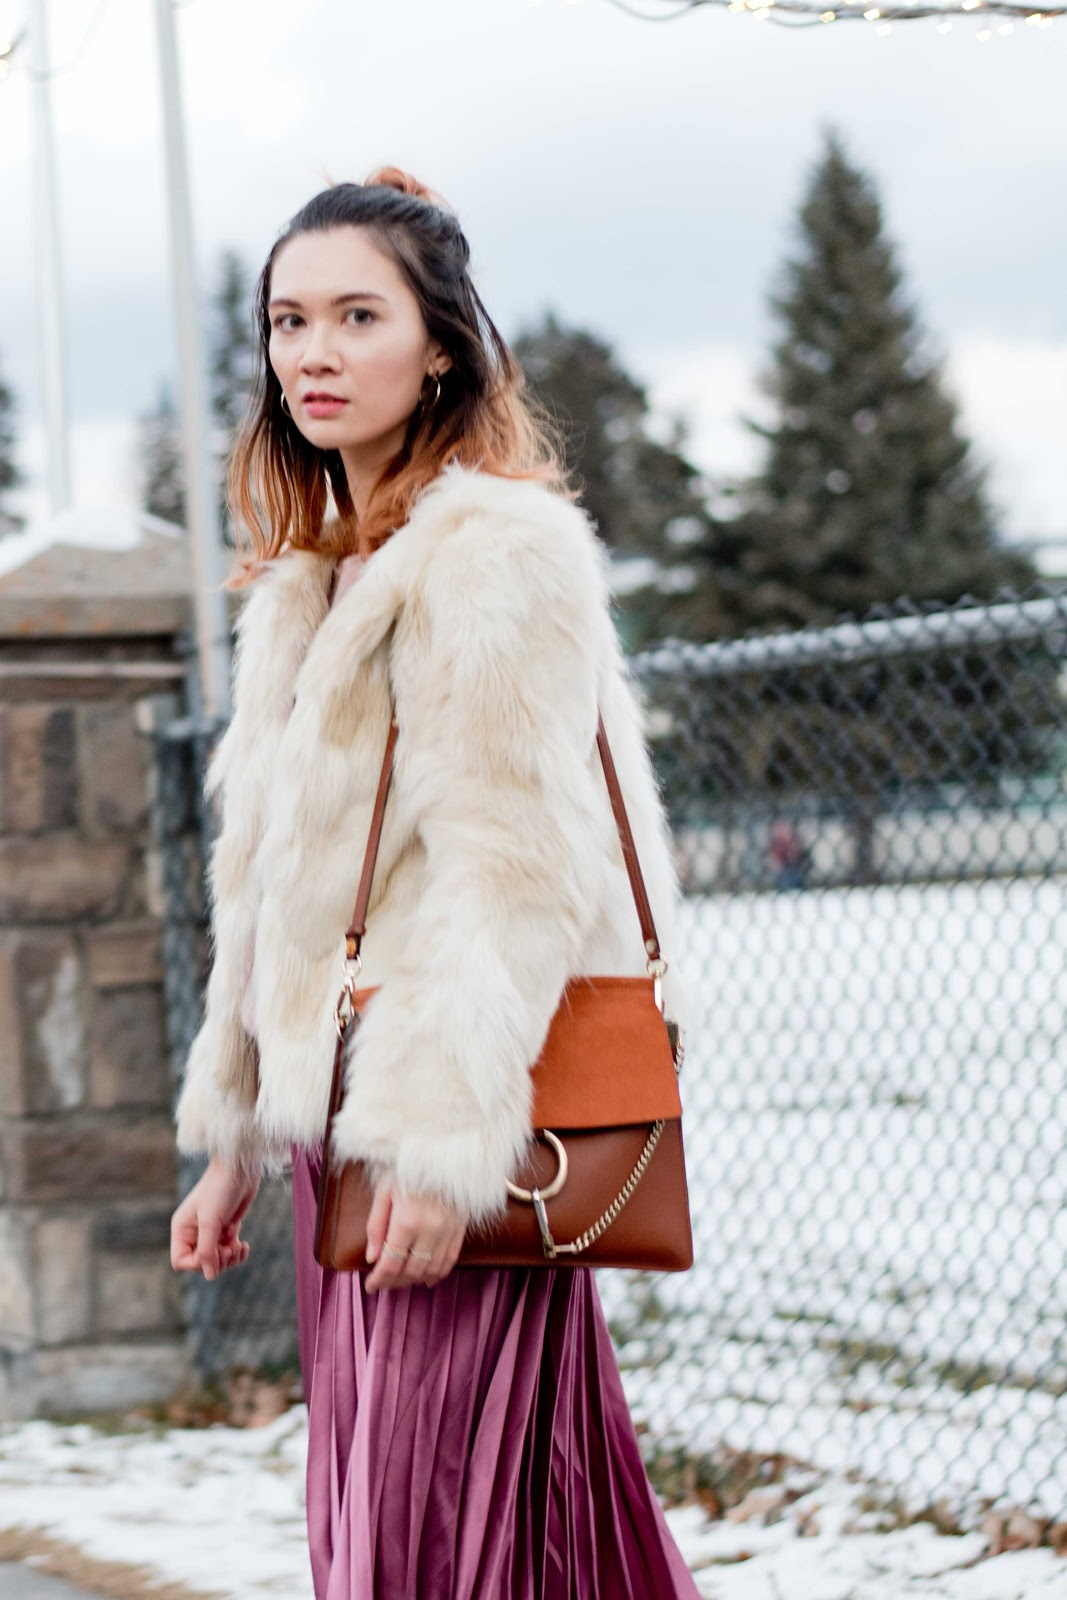 Pleated Midi Skirt, Fur Coat, Banff